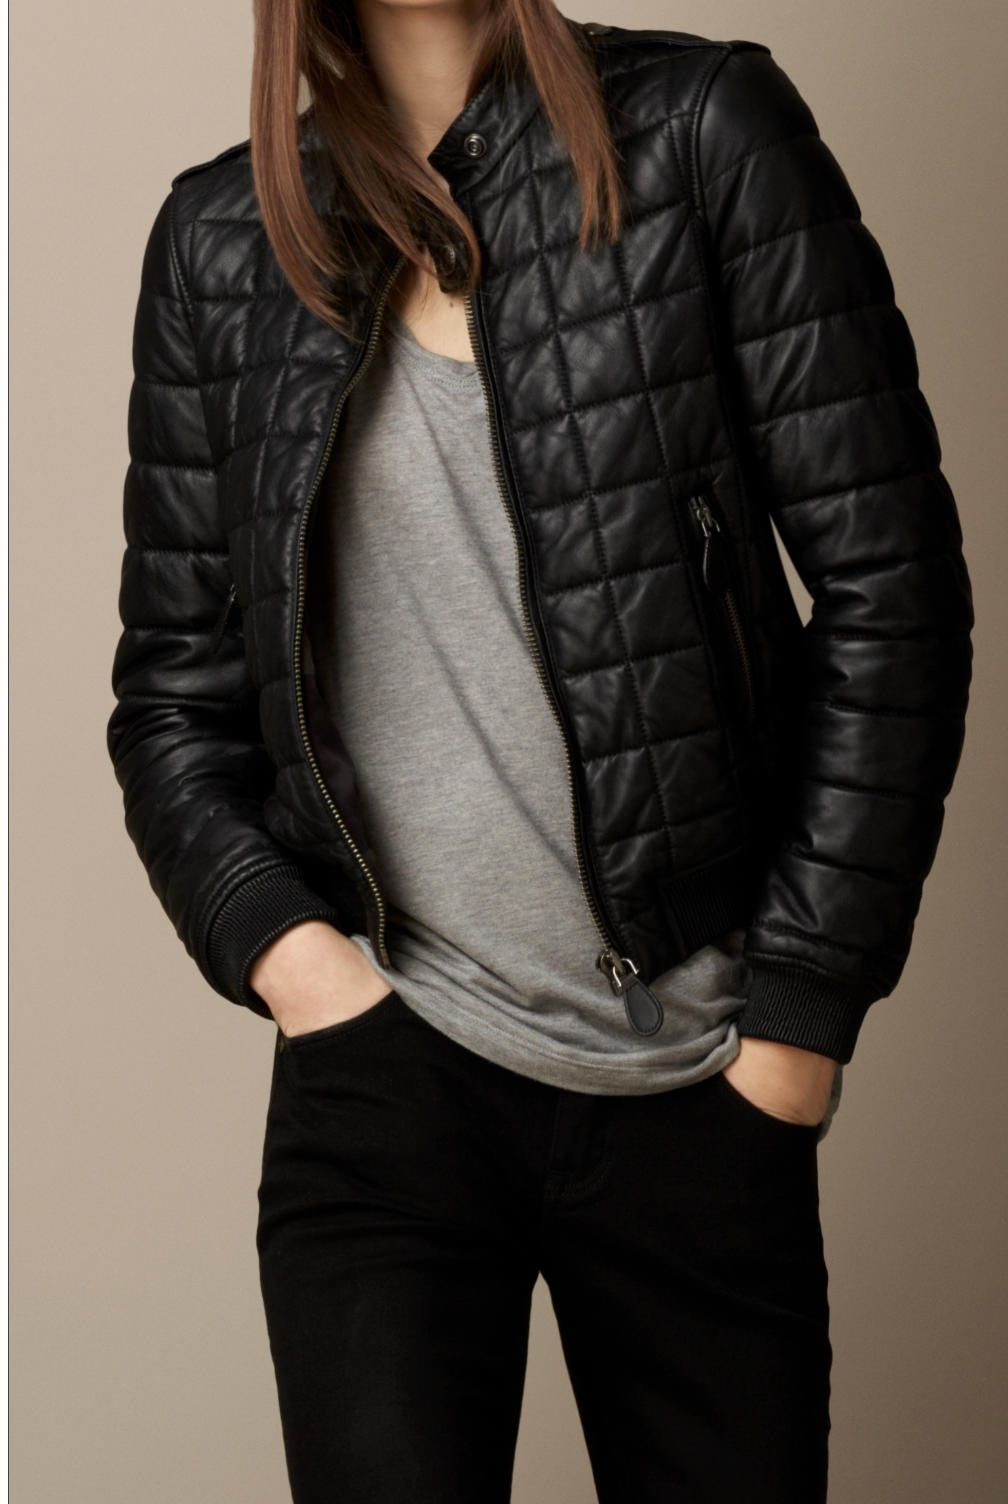 Handmade women quilted leather jacket, women black quilted